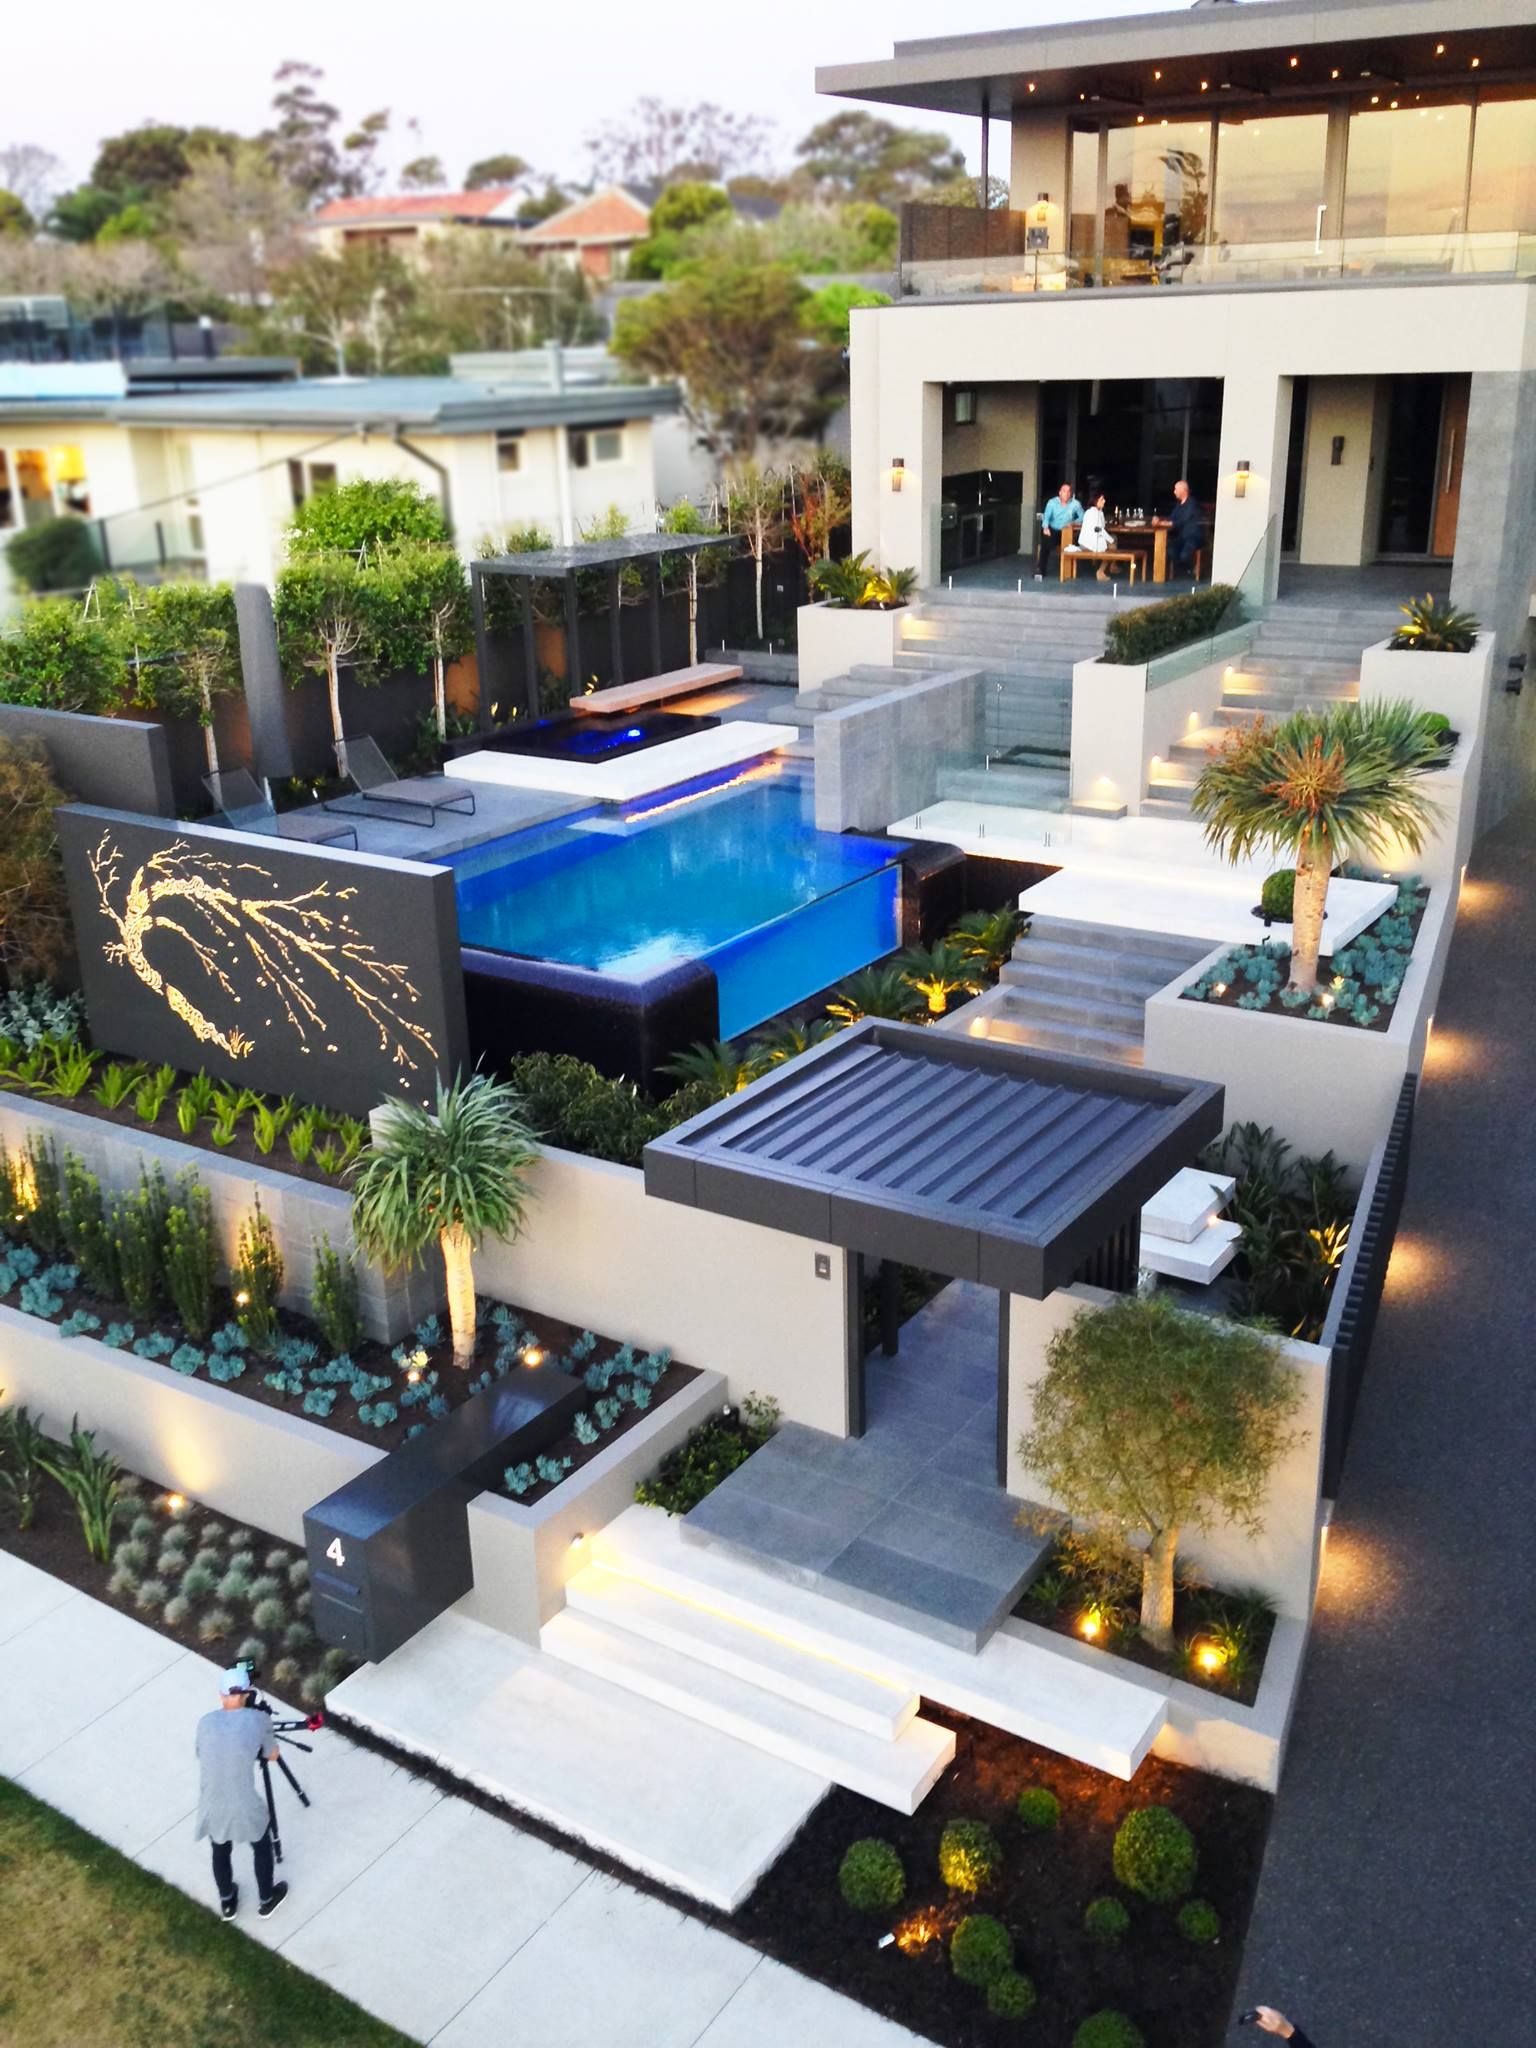 Most Futuristic House In the World Unique 104 Best Millionaire Homes Images